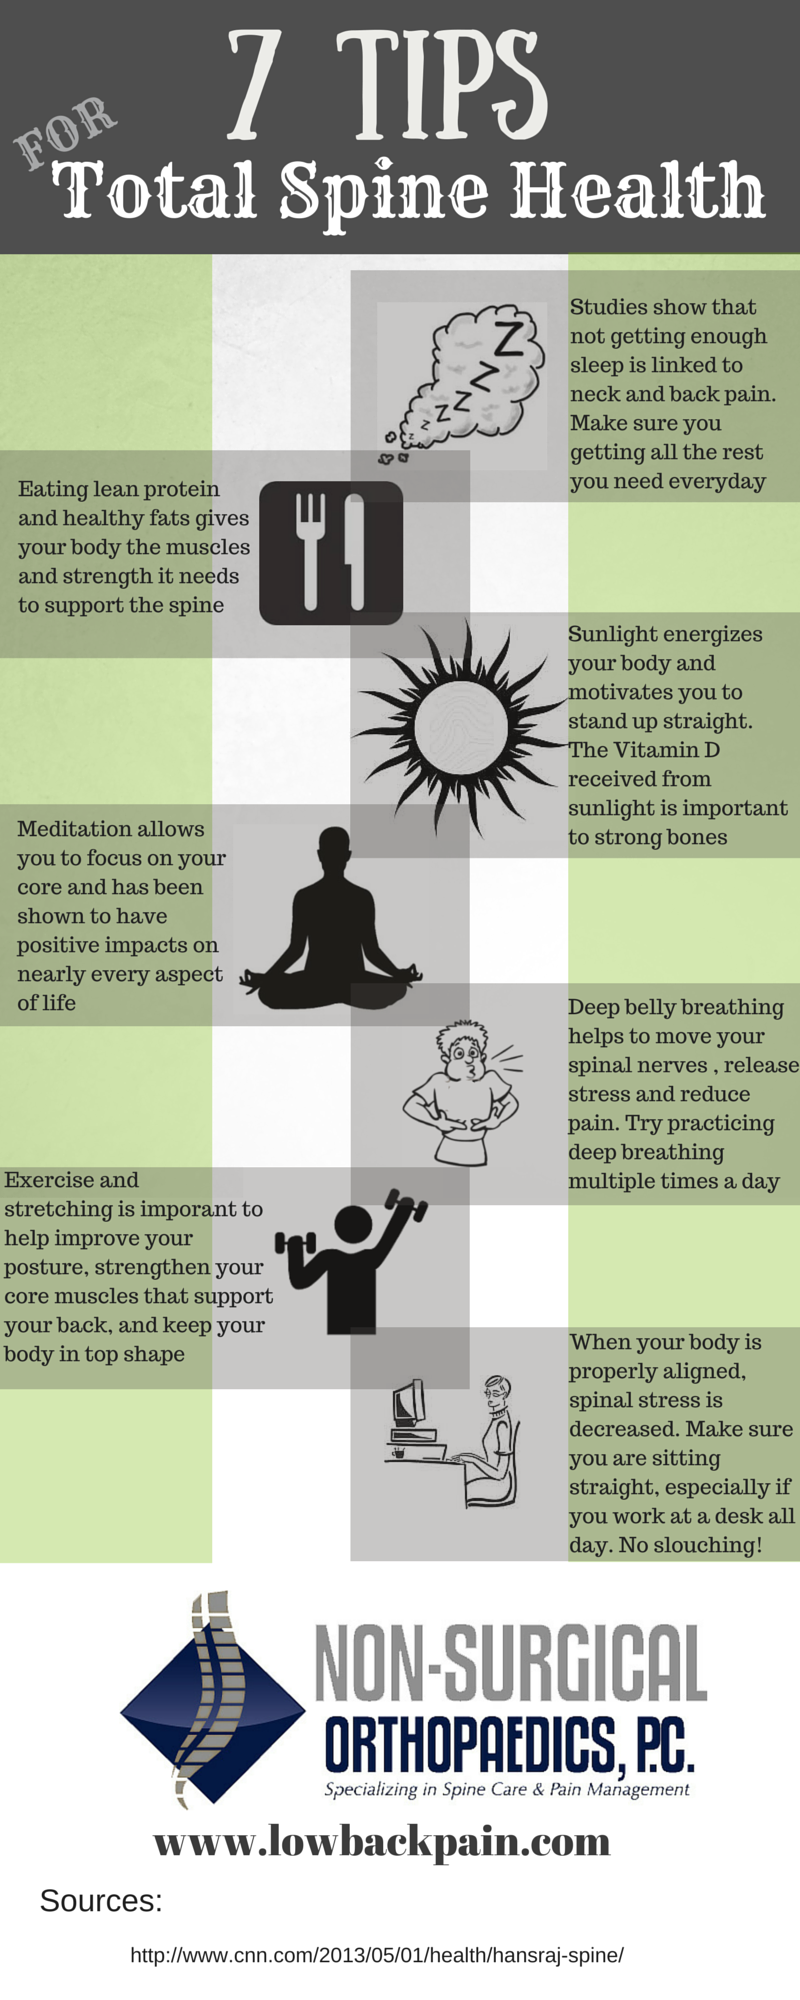 7 tips for total spine health